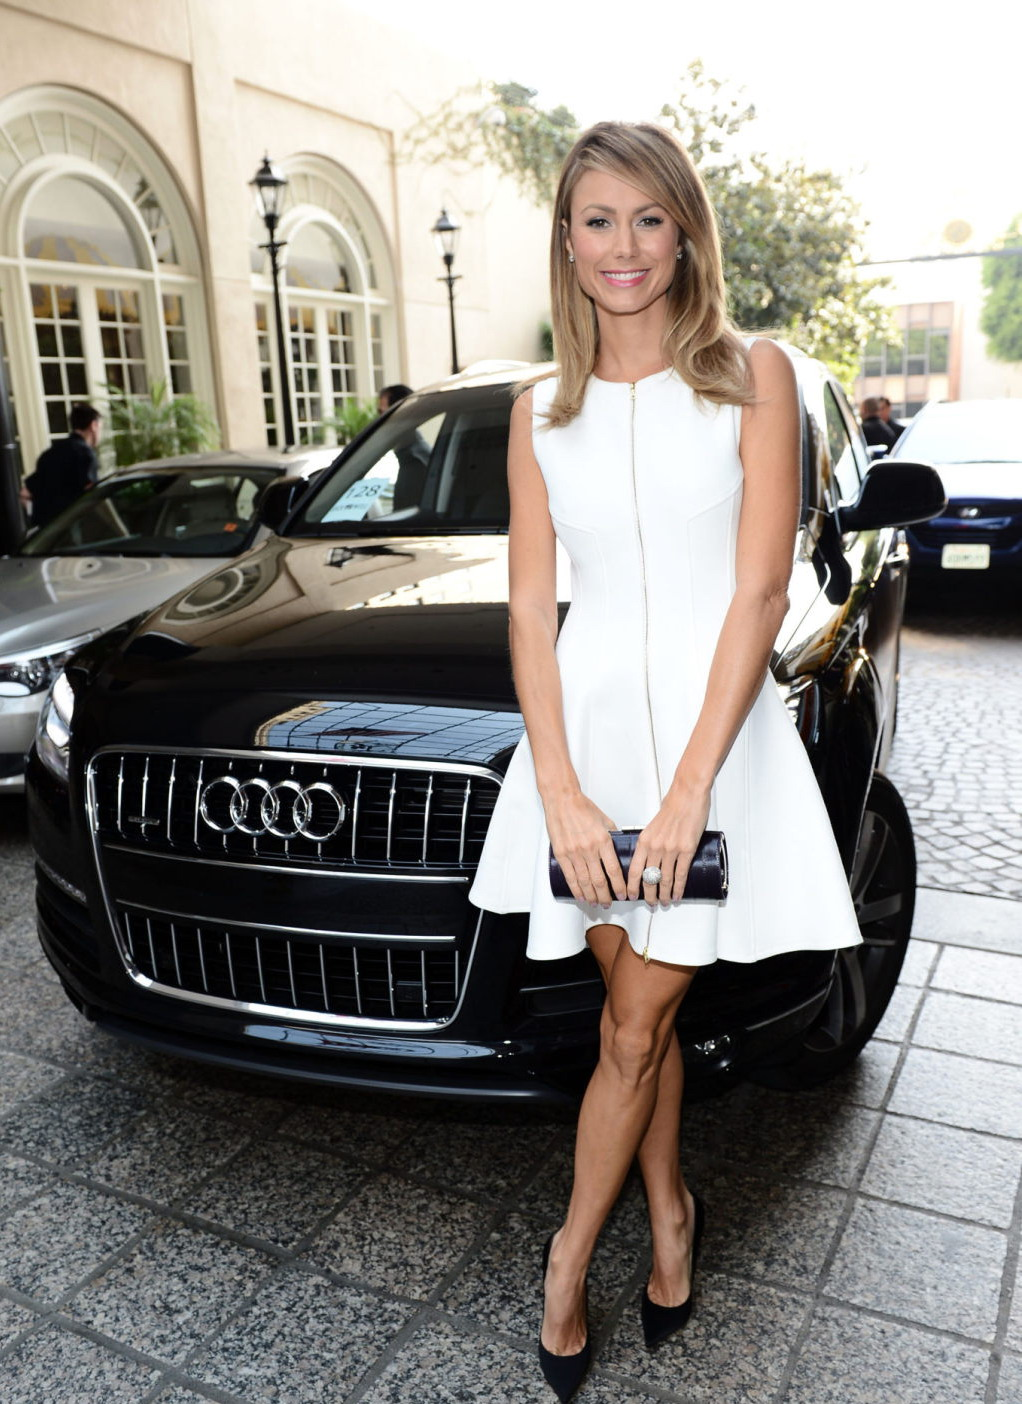 Stacy Keibler Variety's 4th Annual Power of Women event in Beverly Hills - October 5, 2012